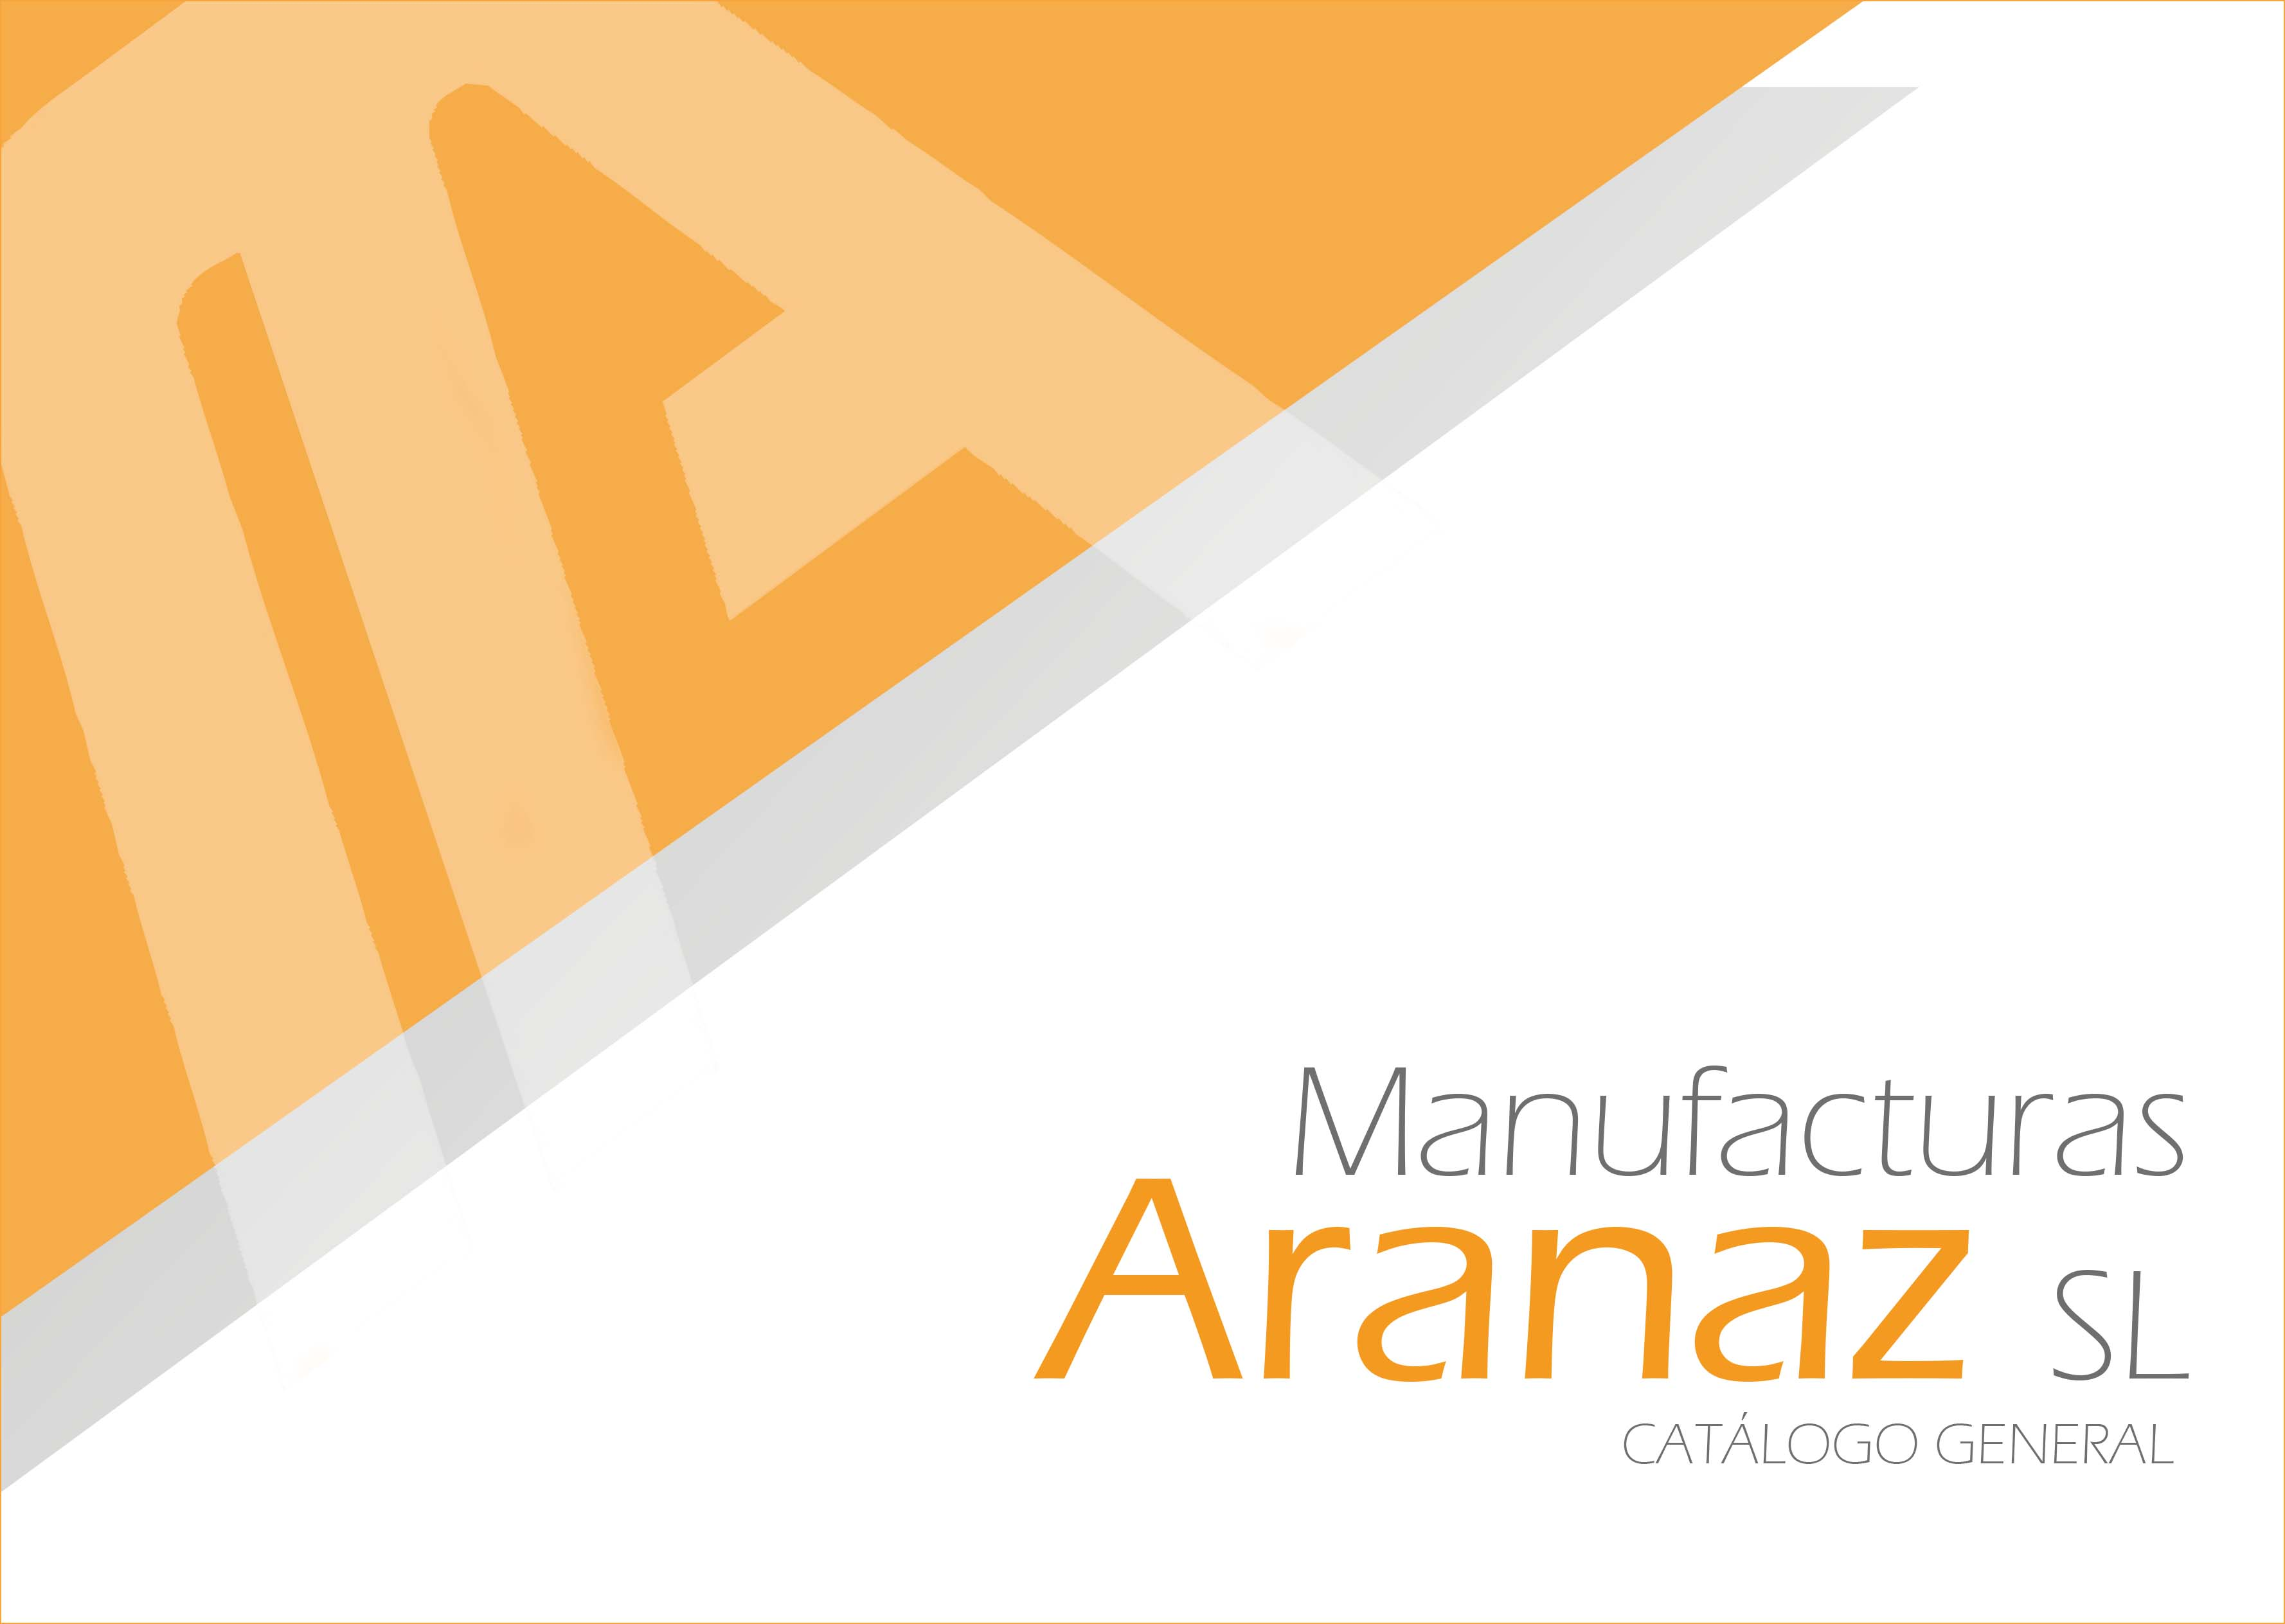 catalogo aranaz general 2016 2018 portada